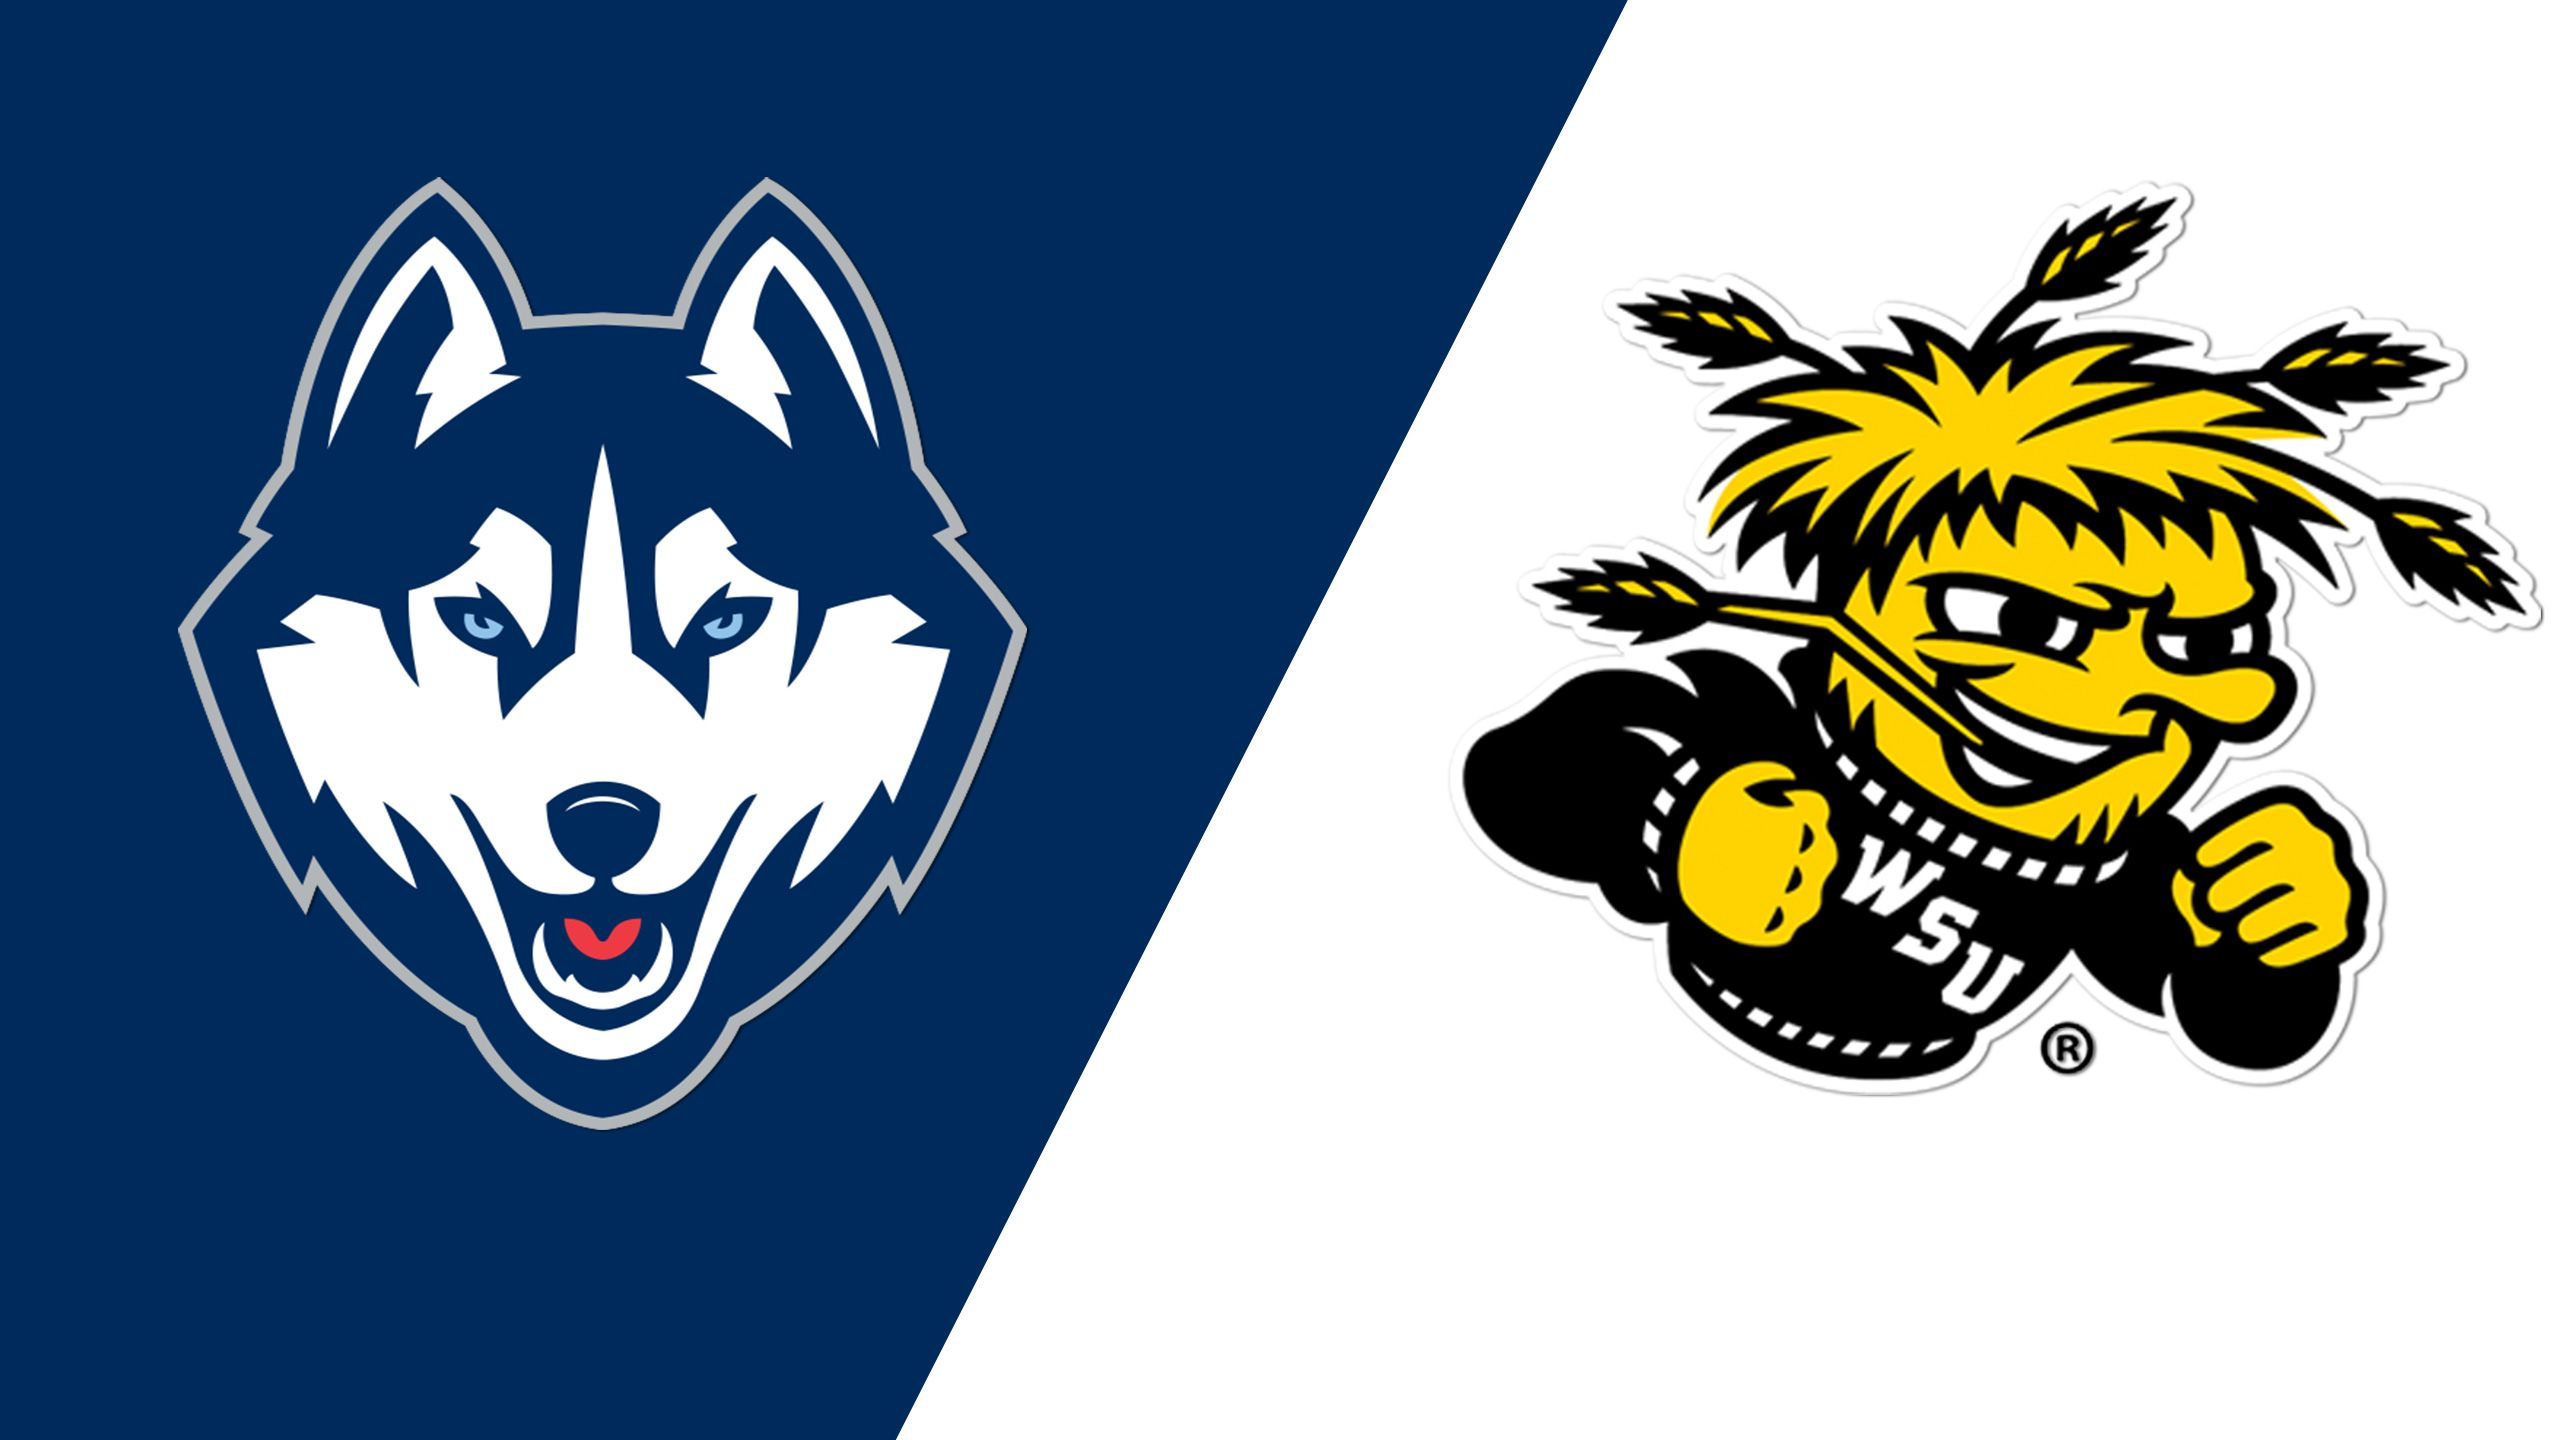 Connecticut vs. Wichita State (Baseball)